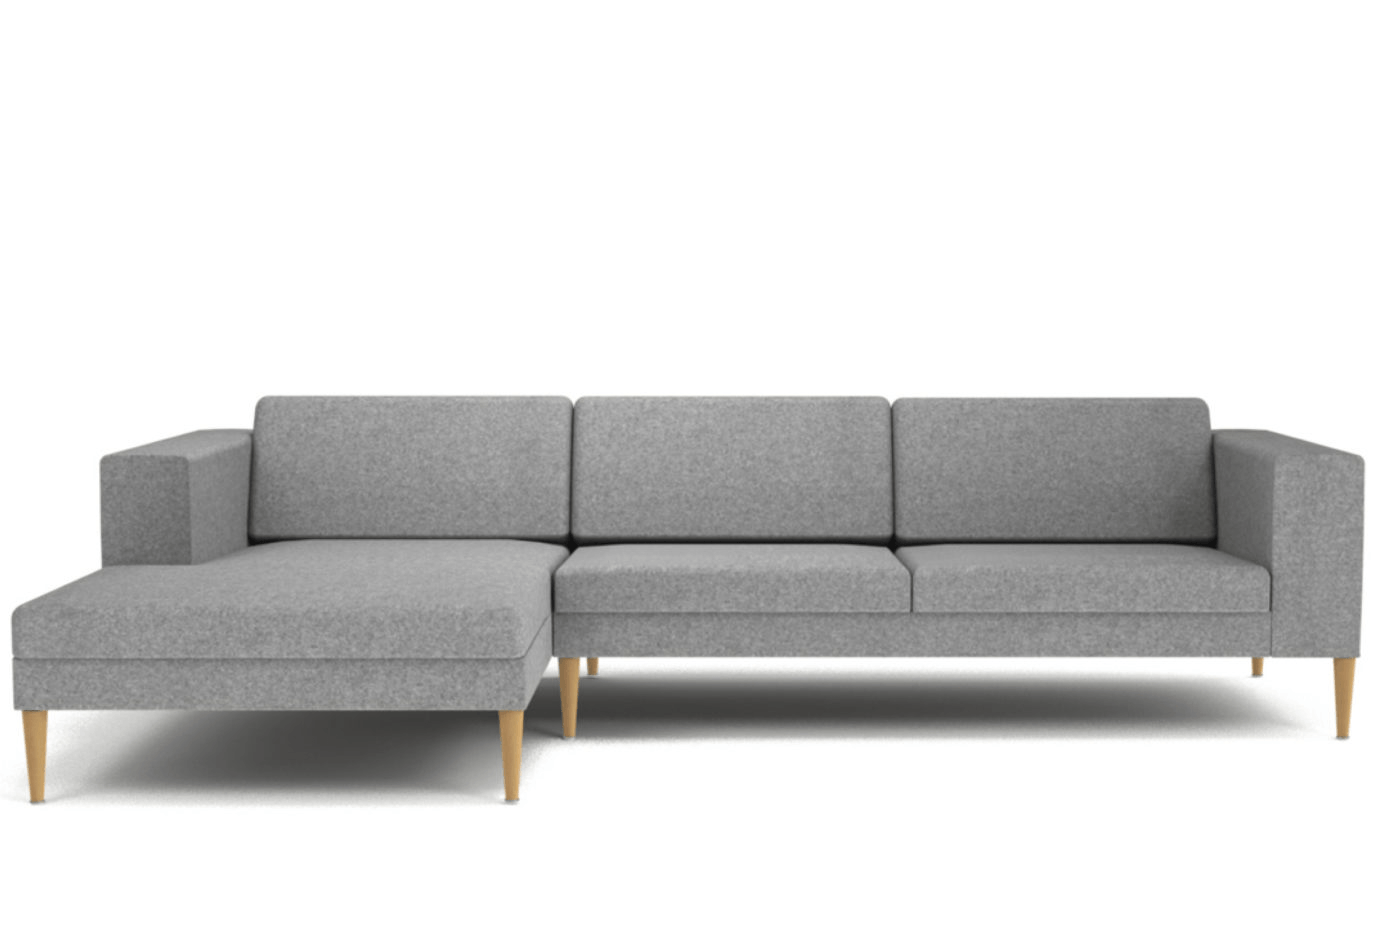 Sofa Chaise Lounge Sofa The Honoroak